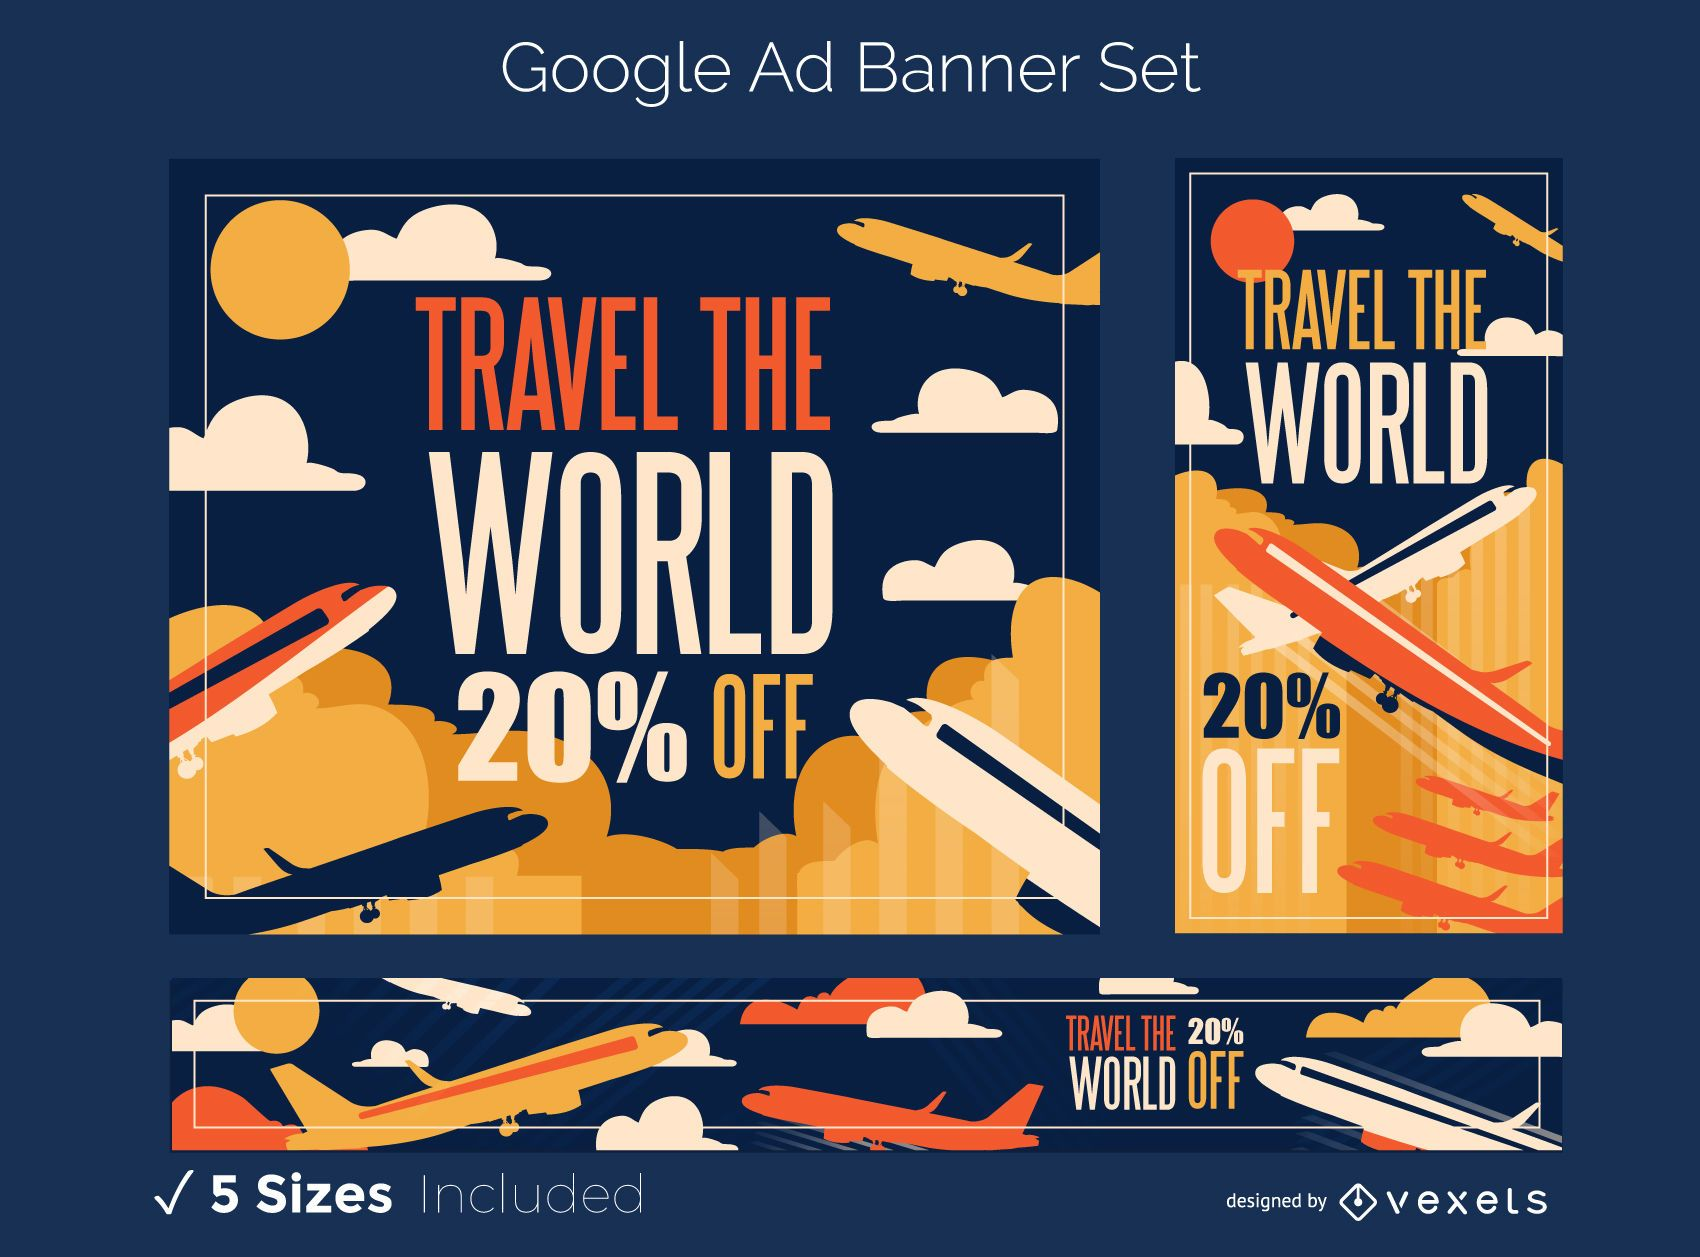 Airplanes ad banner set